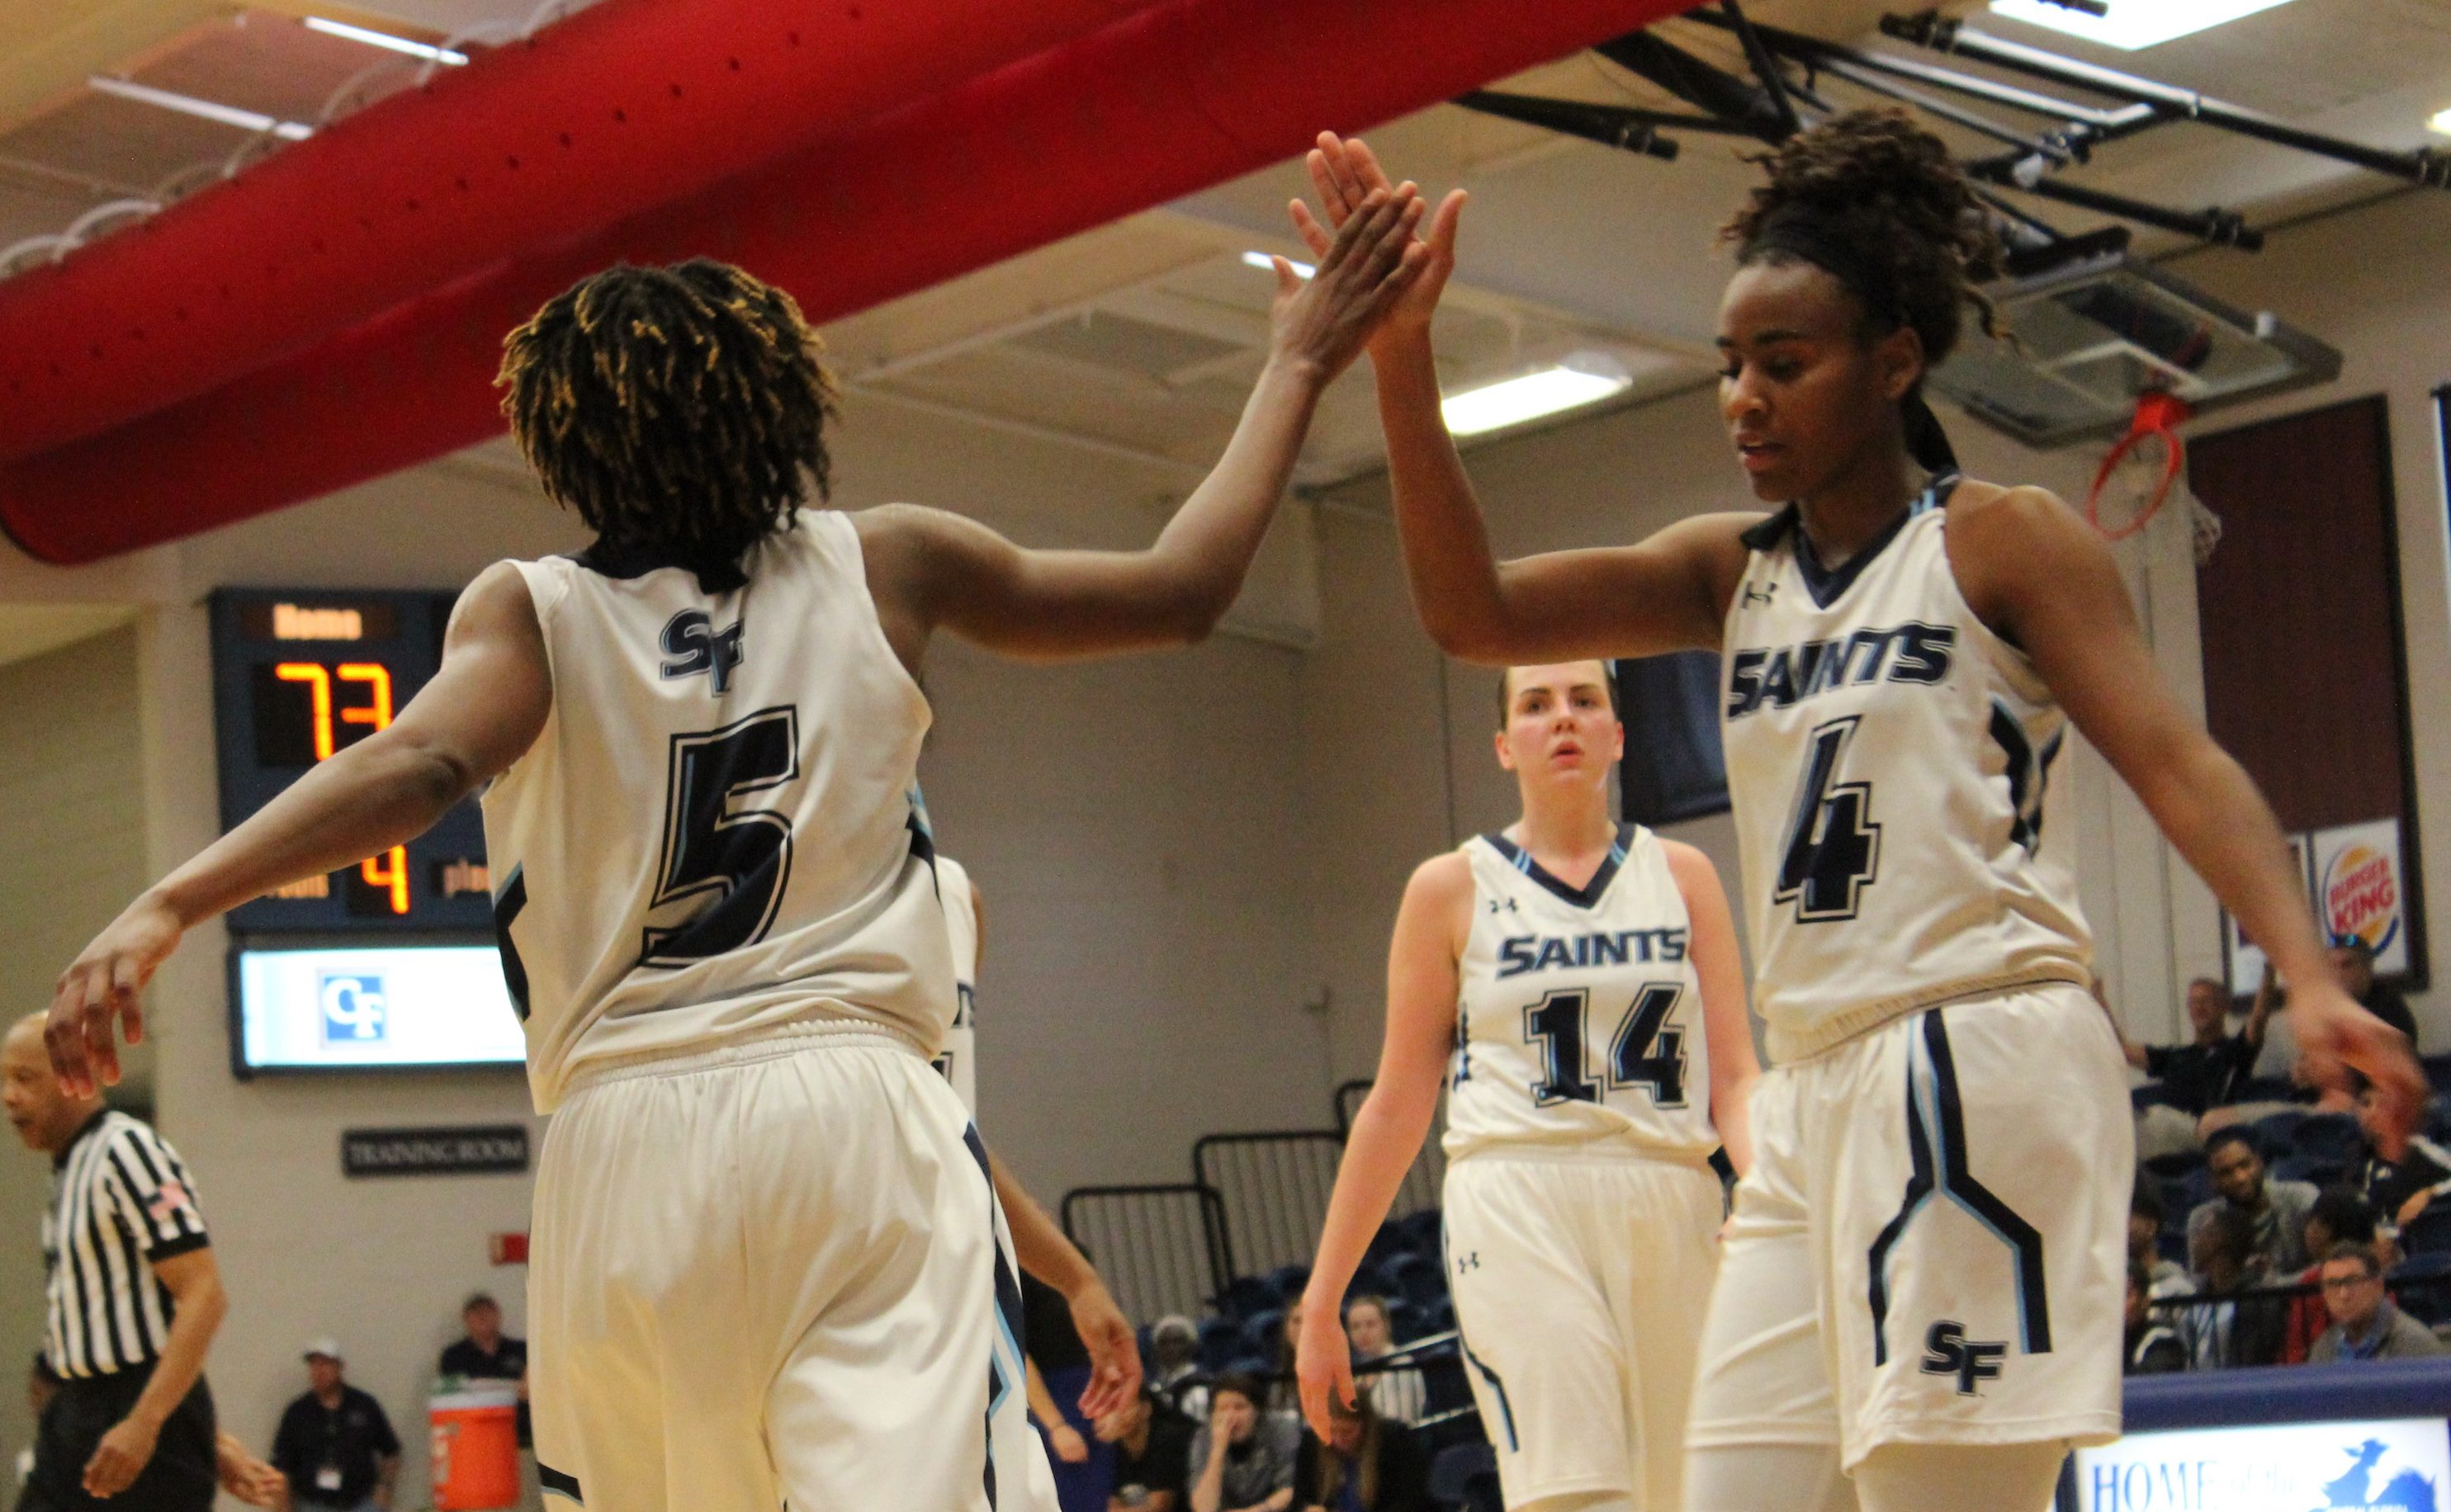 Santa Fe College Calendar >> Santa Fe Women's Hoops Advances to Second Round of State Tournament - ESPN 98.1 FM - 850 AM WRUF